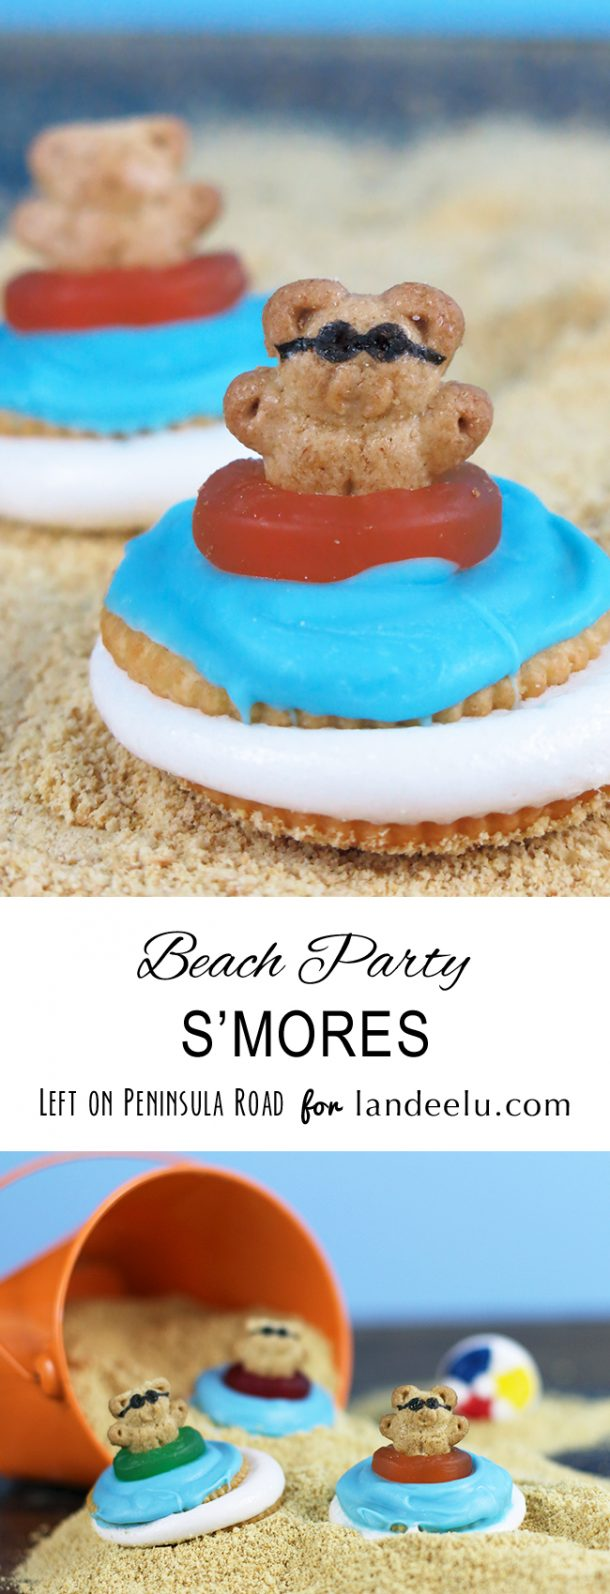 S'Mores Dessert Treats Recipes - Microwave Beach Party S'mores with cute Teddy Grahams Recipe via Landeelu